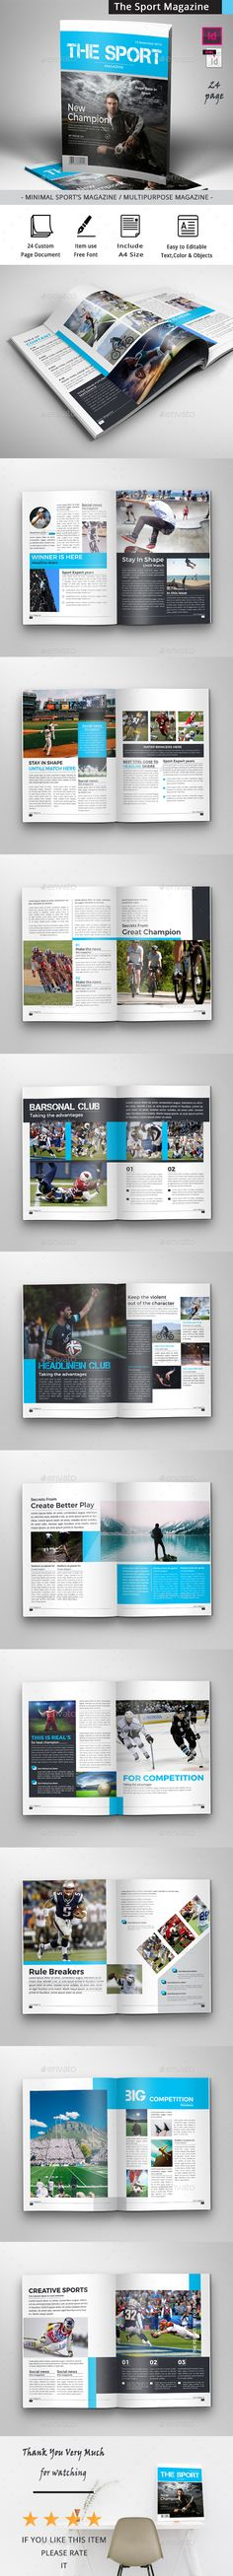 The Sport Magazine by obayes  Brochure Description:The Sport magazine Professional and clean InDesign template that is super simple to edit and customize with